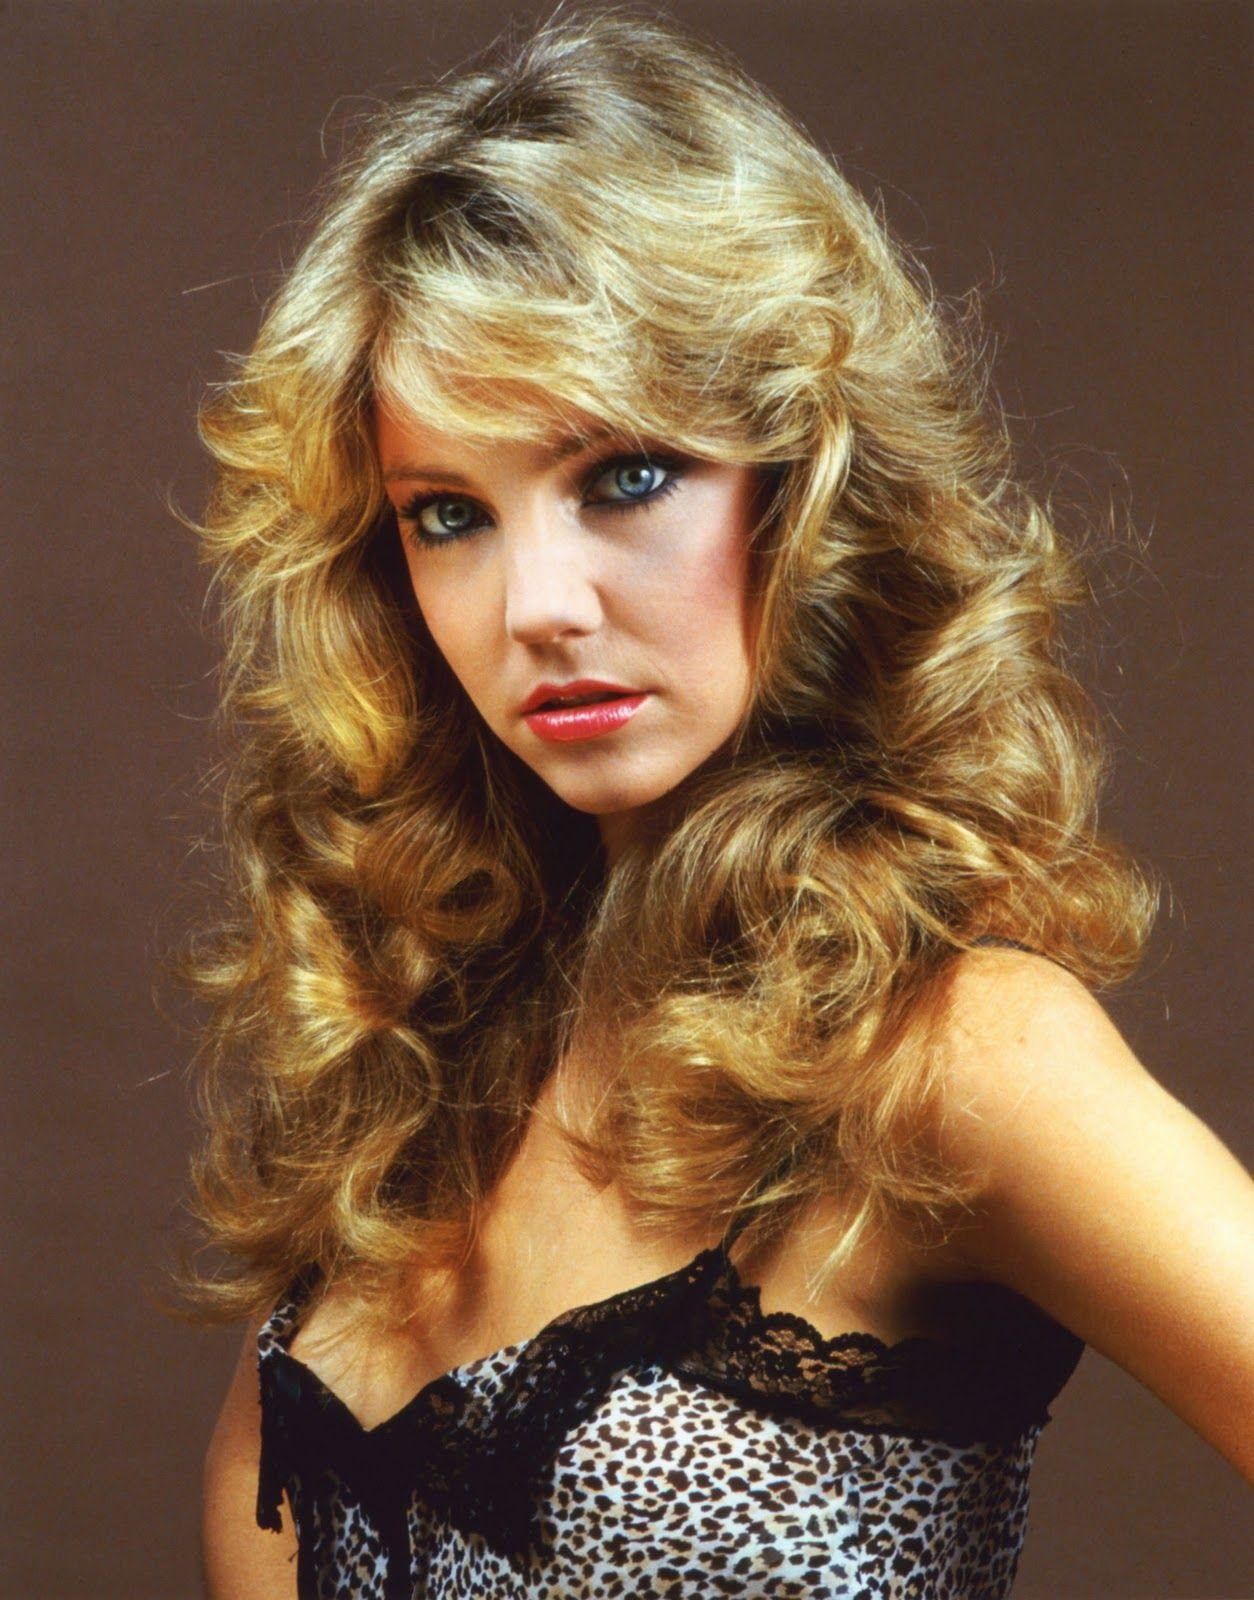 Heather Locklear Wallpapers - Wallpaper Cave-1114